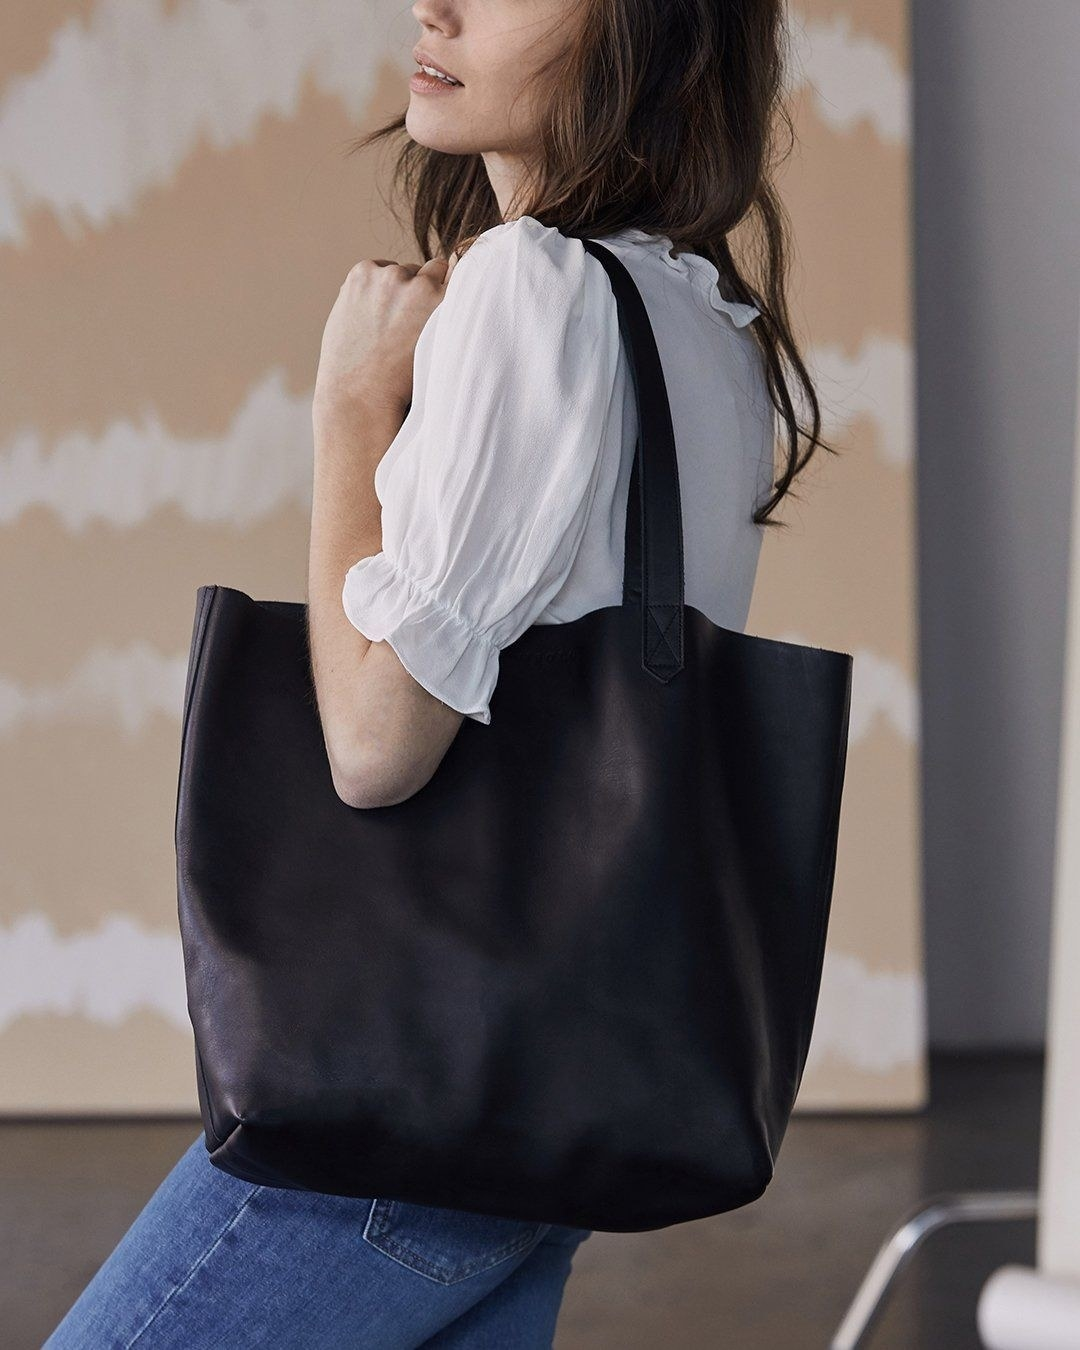 Model with the leather tote bag in black over their shoulder